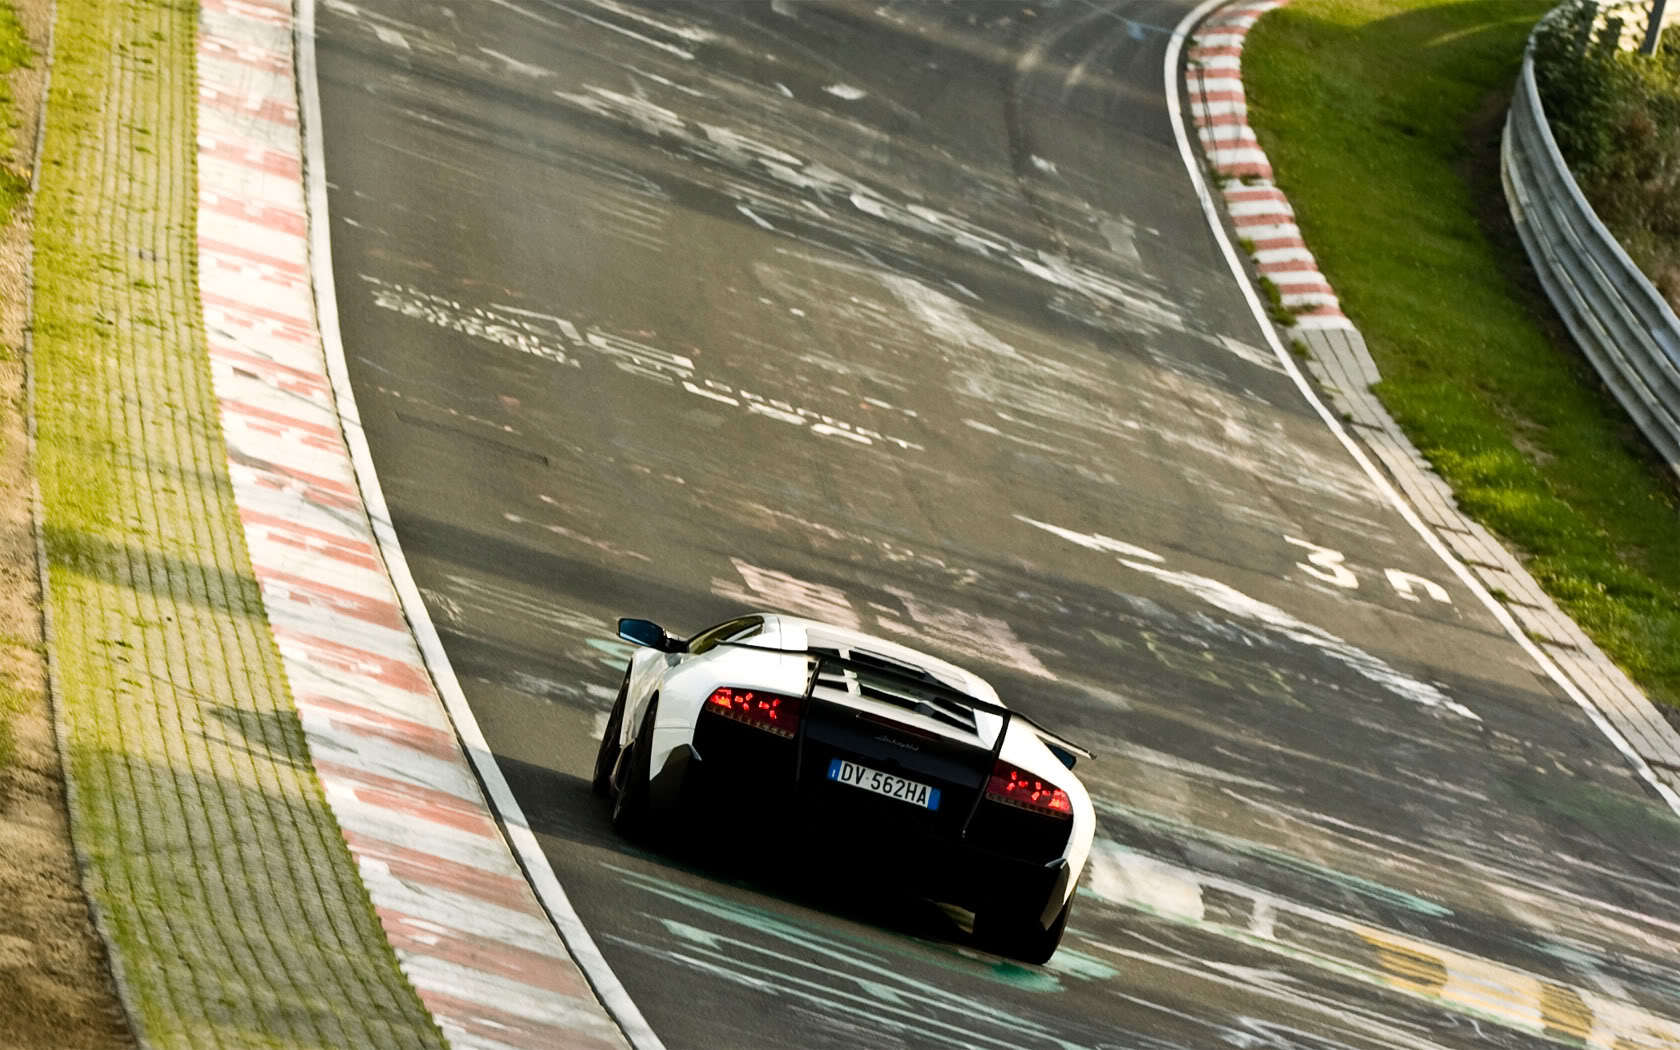 cars Lamborghini vehicles Nürburgring HD Wallpaper